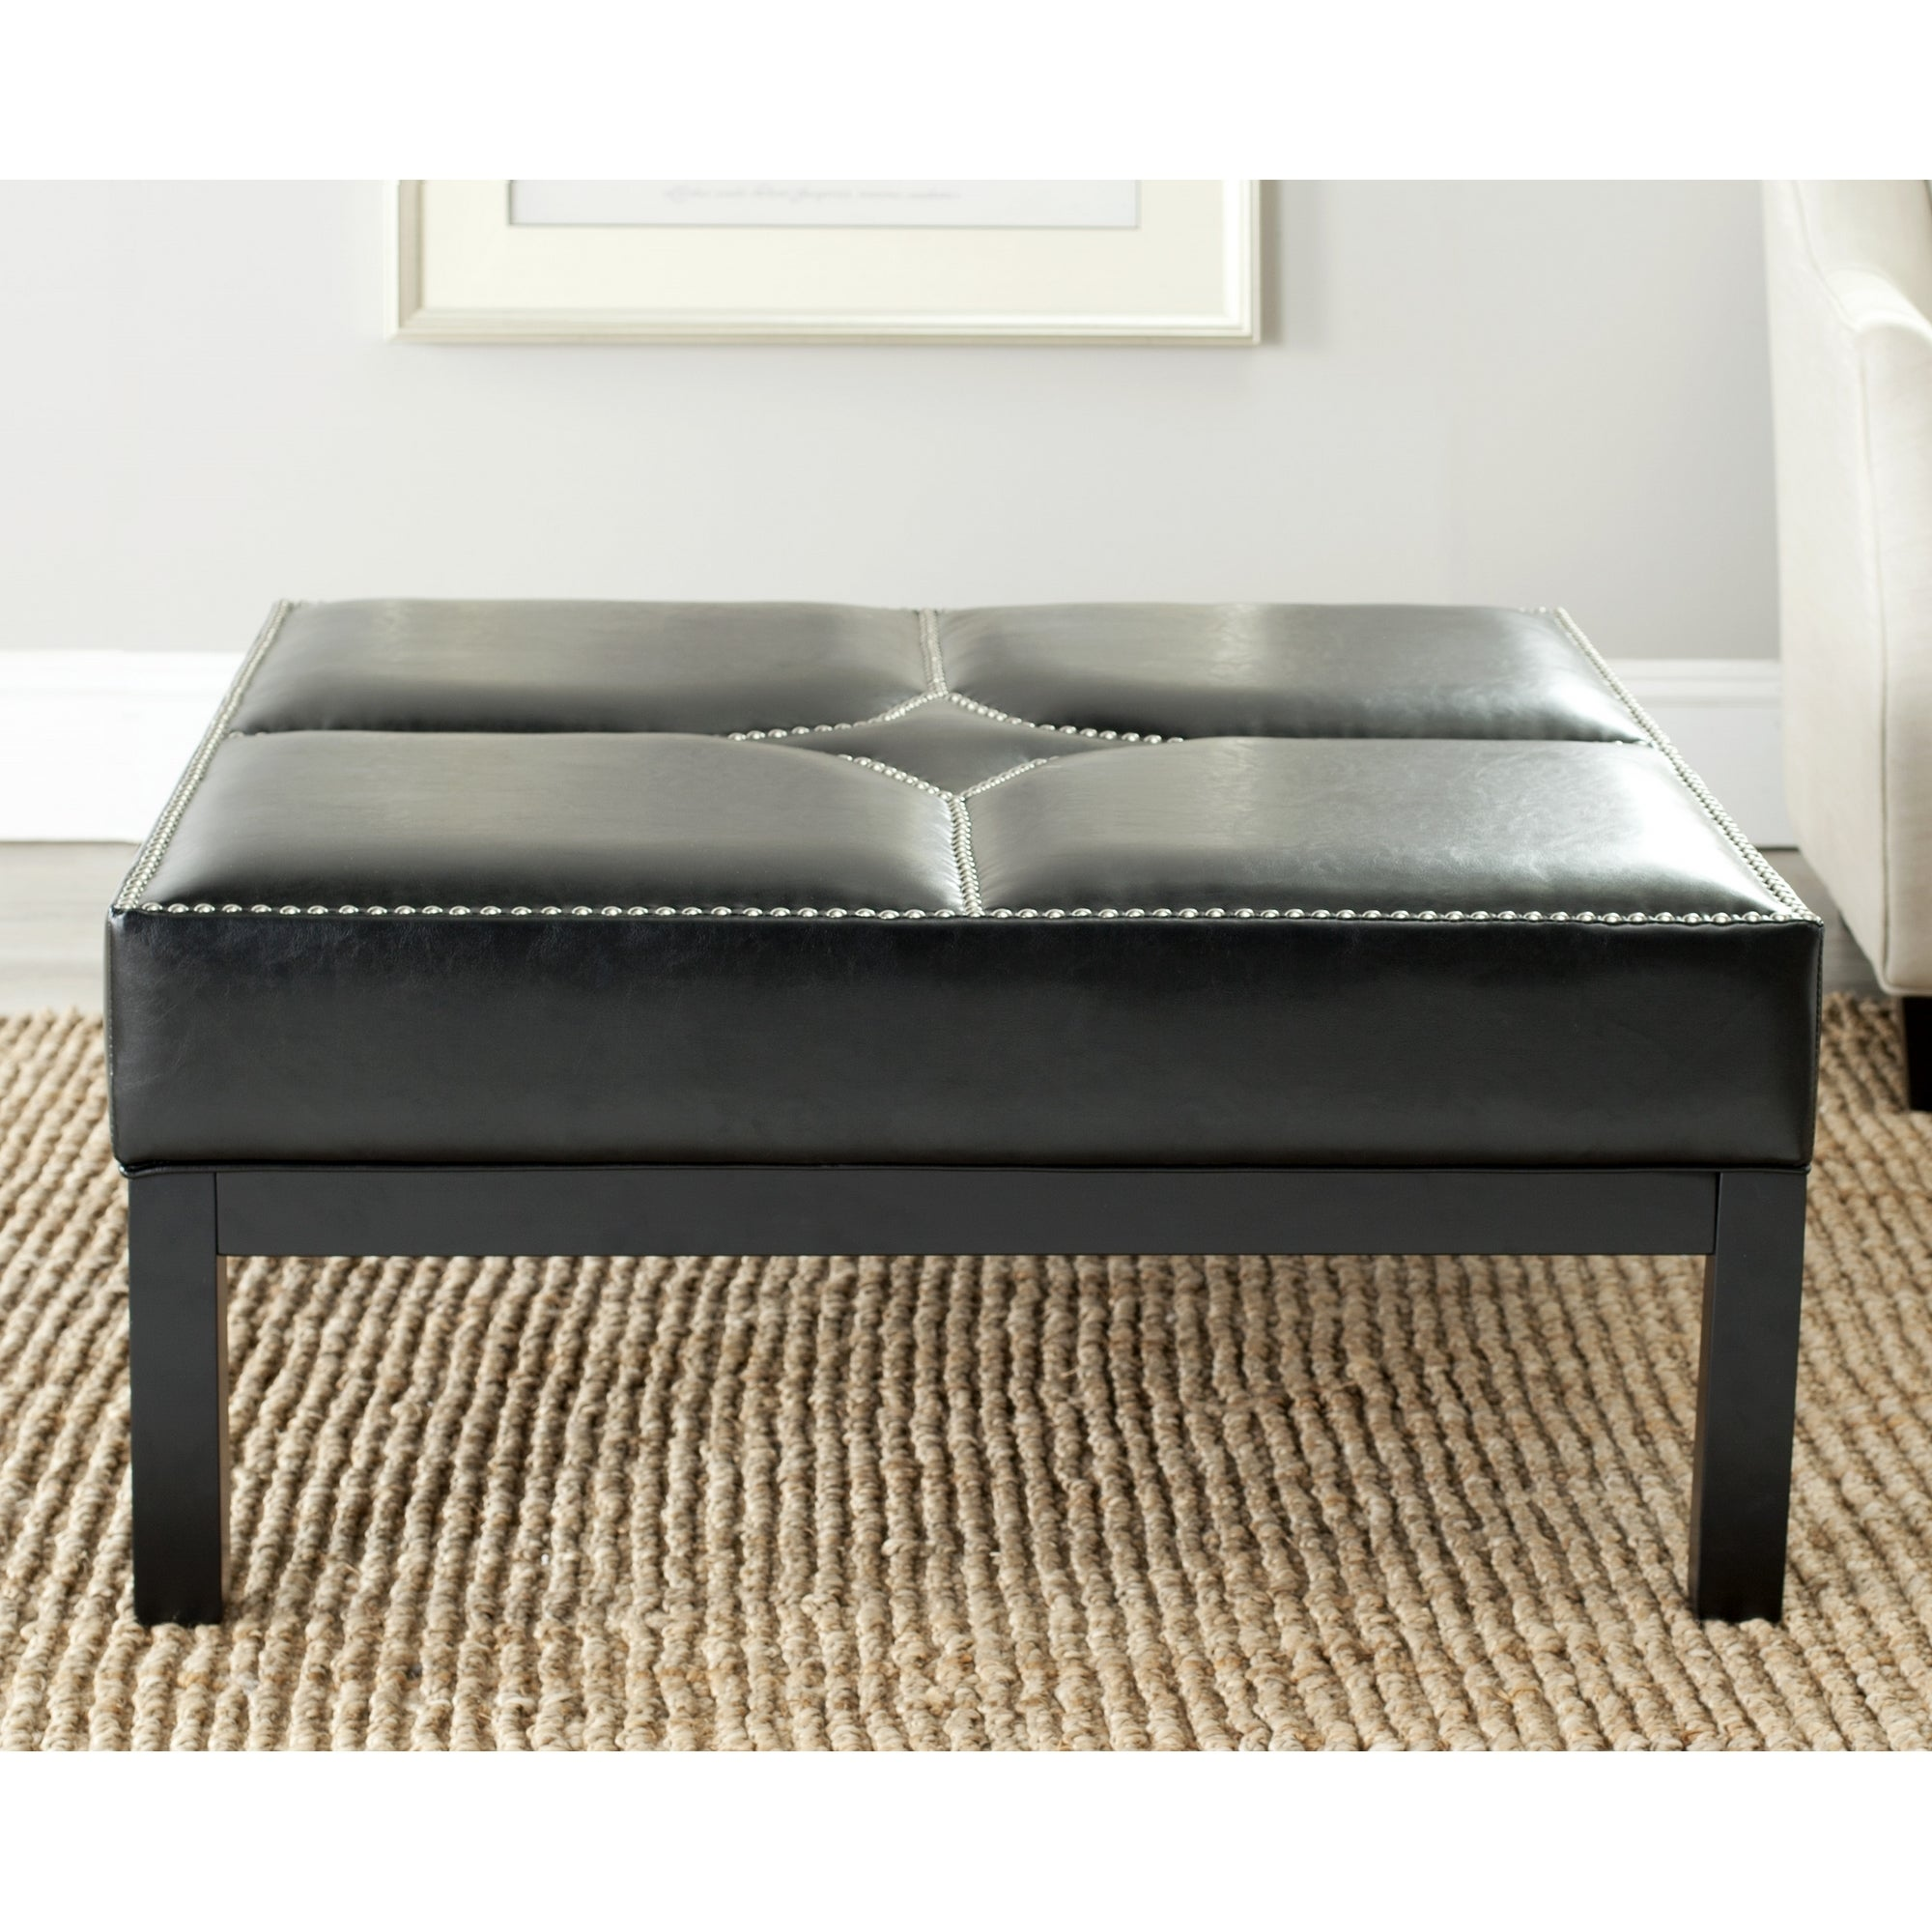 Black ottoman leather table coffee footrest and 50 similar items bonanza Black ottoman coffee table